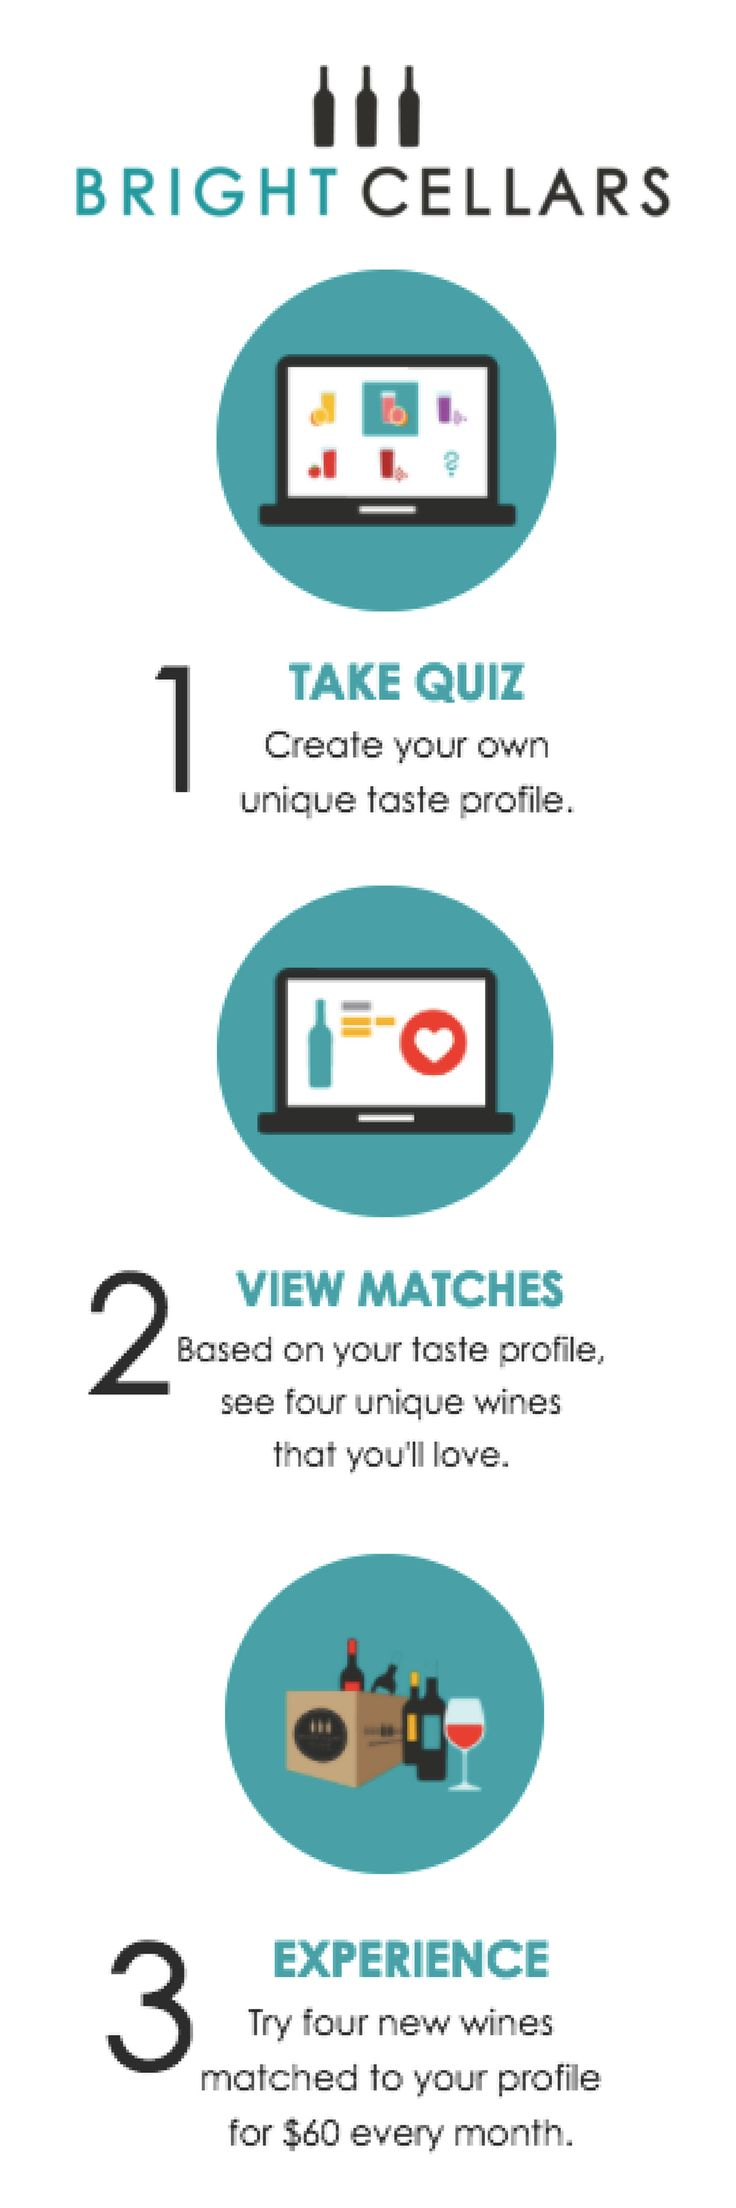 Bright Cellars is the monthly wine club that matches you with wine you'll love.Take your taste palate quiz to see your personalized matches.